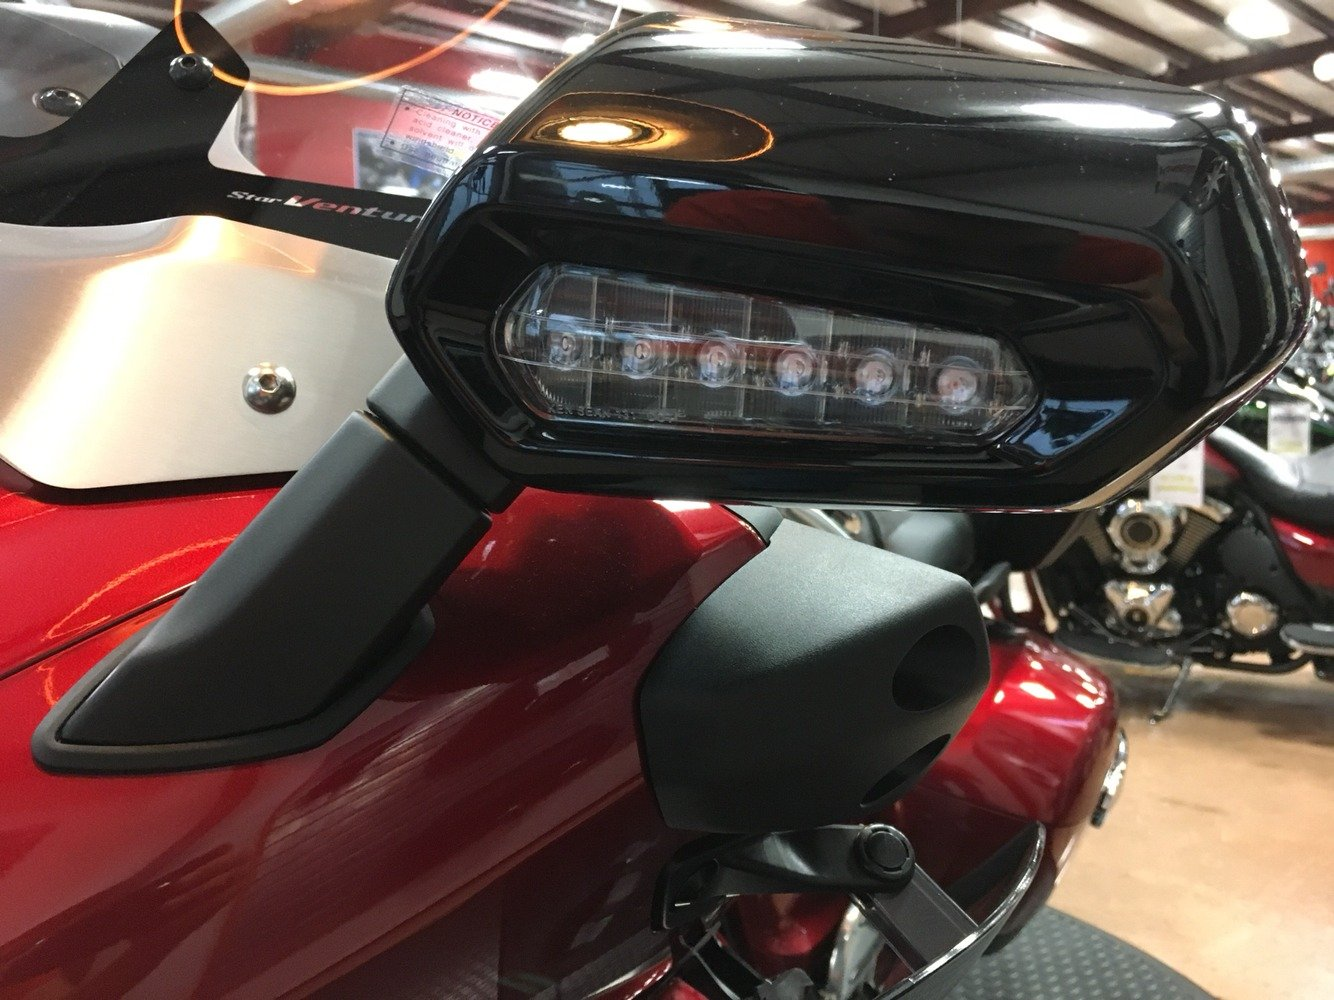 2018 Yamaha Star Venture in Evansville, Indiana - Photo 17